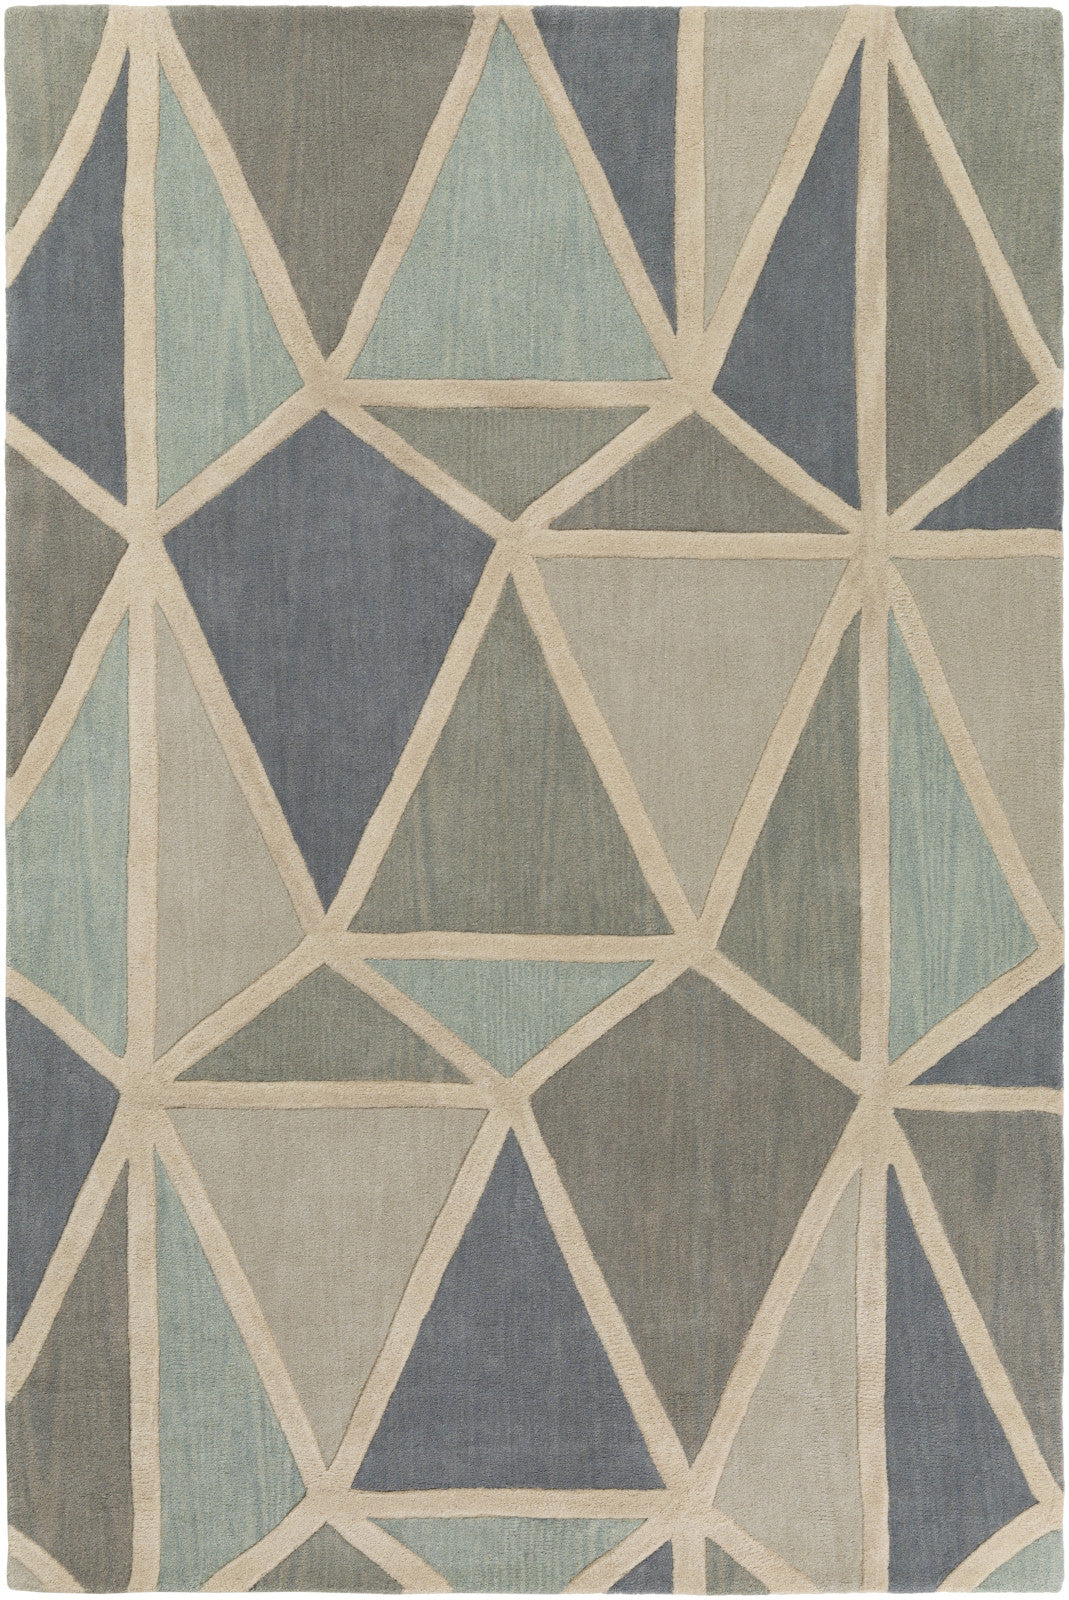 Oasis OAS-1119 White Area Rug by Surya